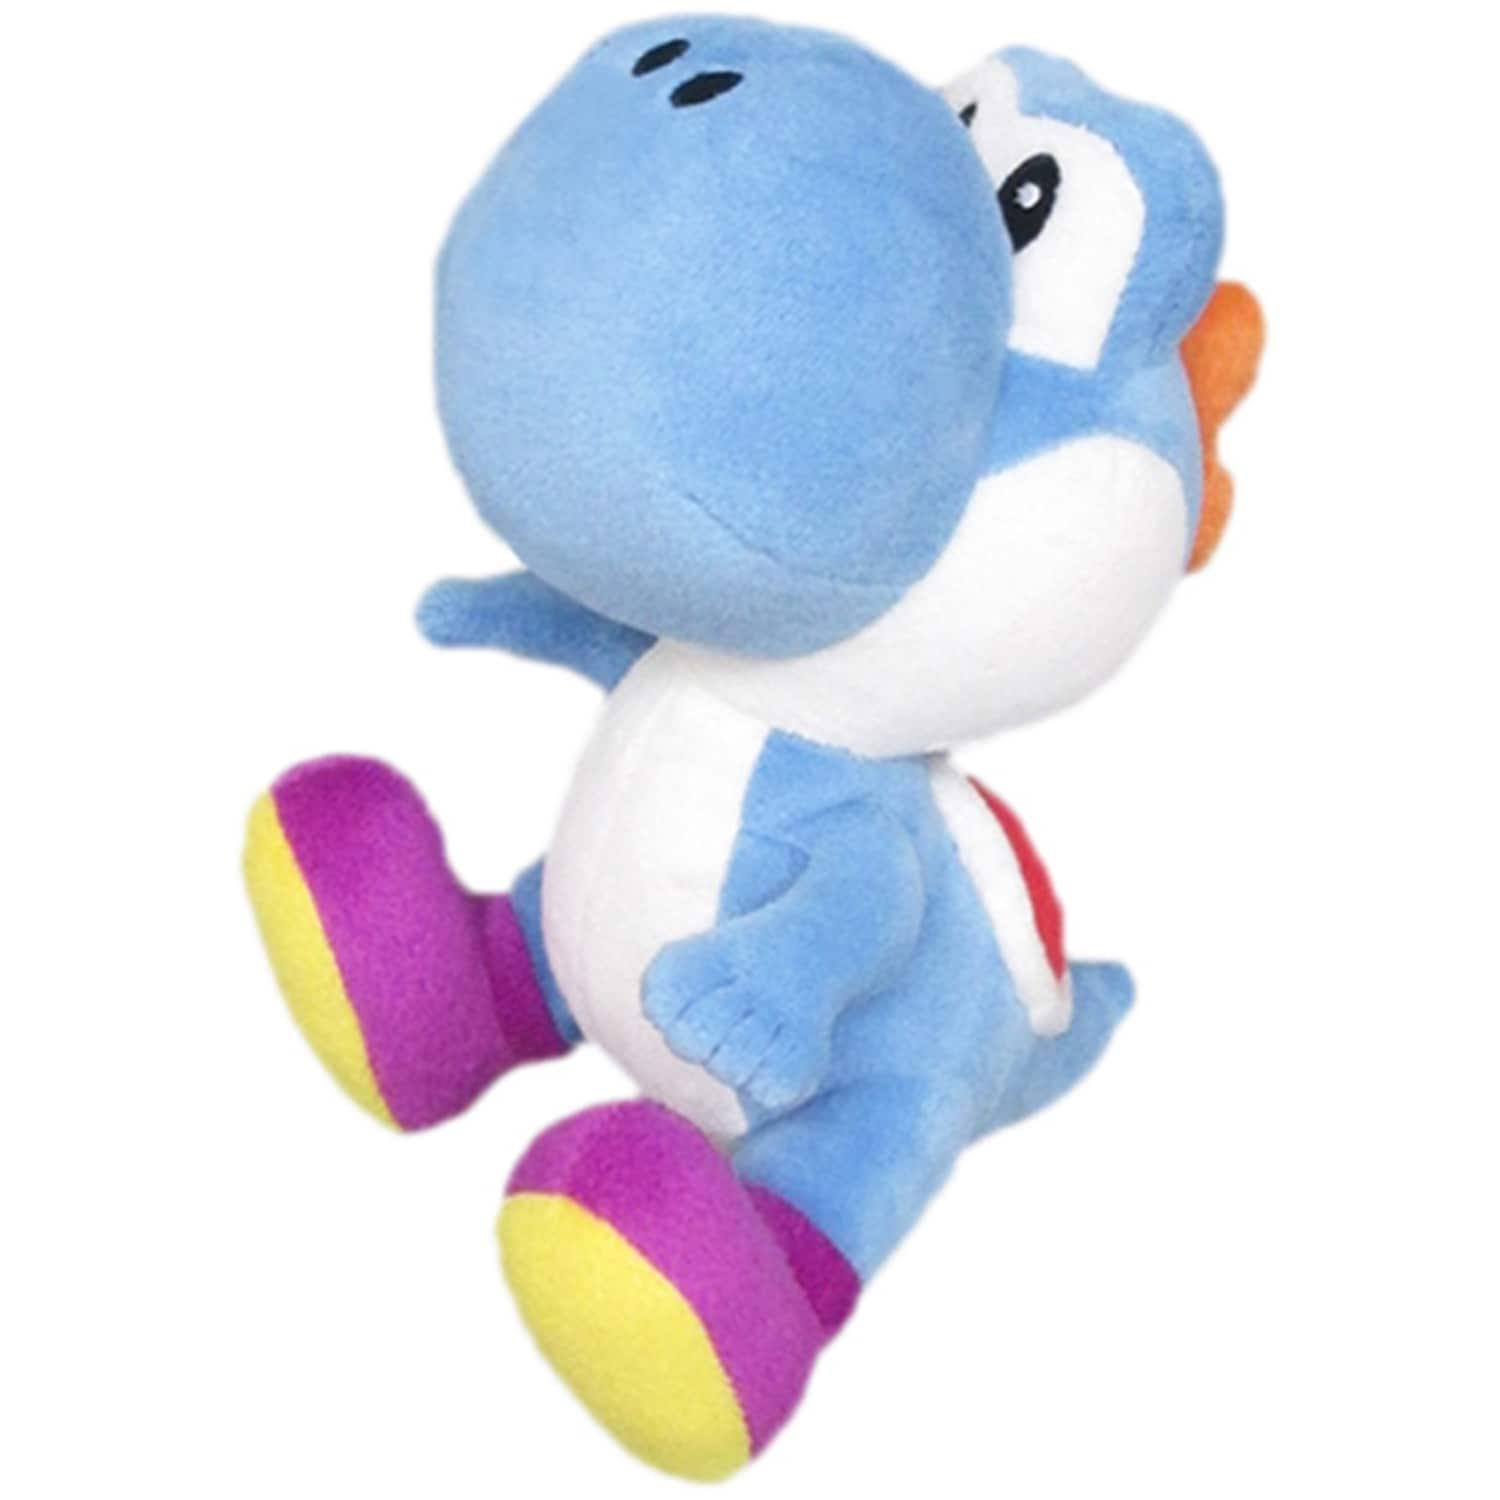 Little Buddy Super Mario Bros Plush Toy - Yoshi, Dark Blue, 15cm